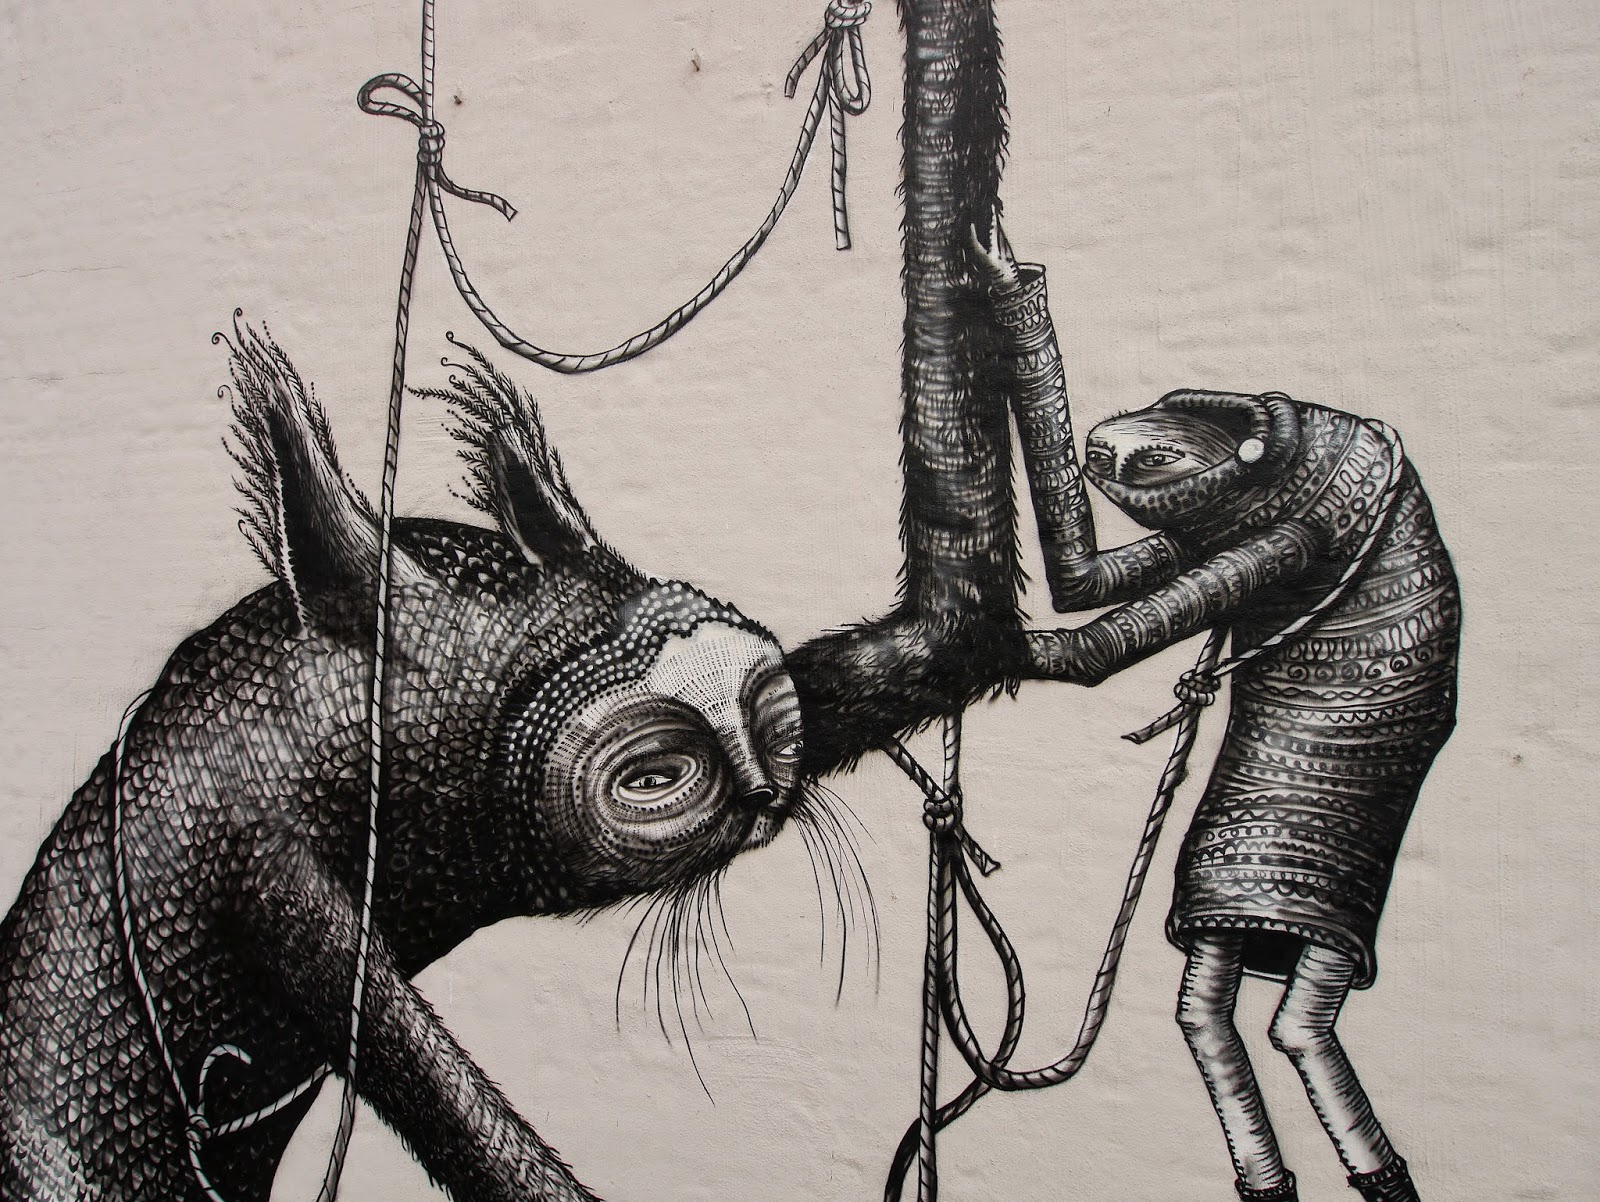 phlegm-new-mural-for-artscape-festival-2014-06